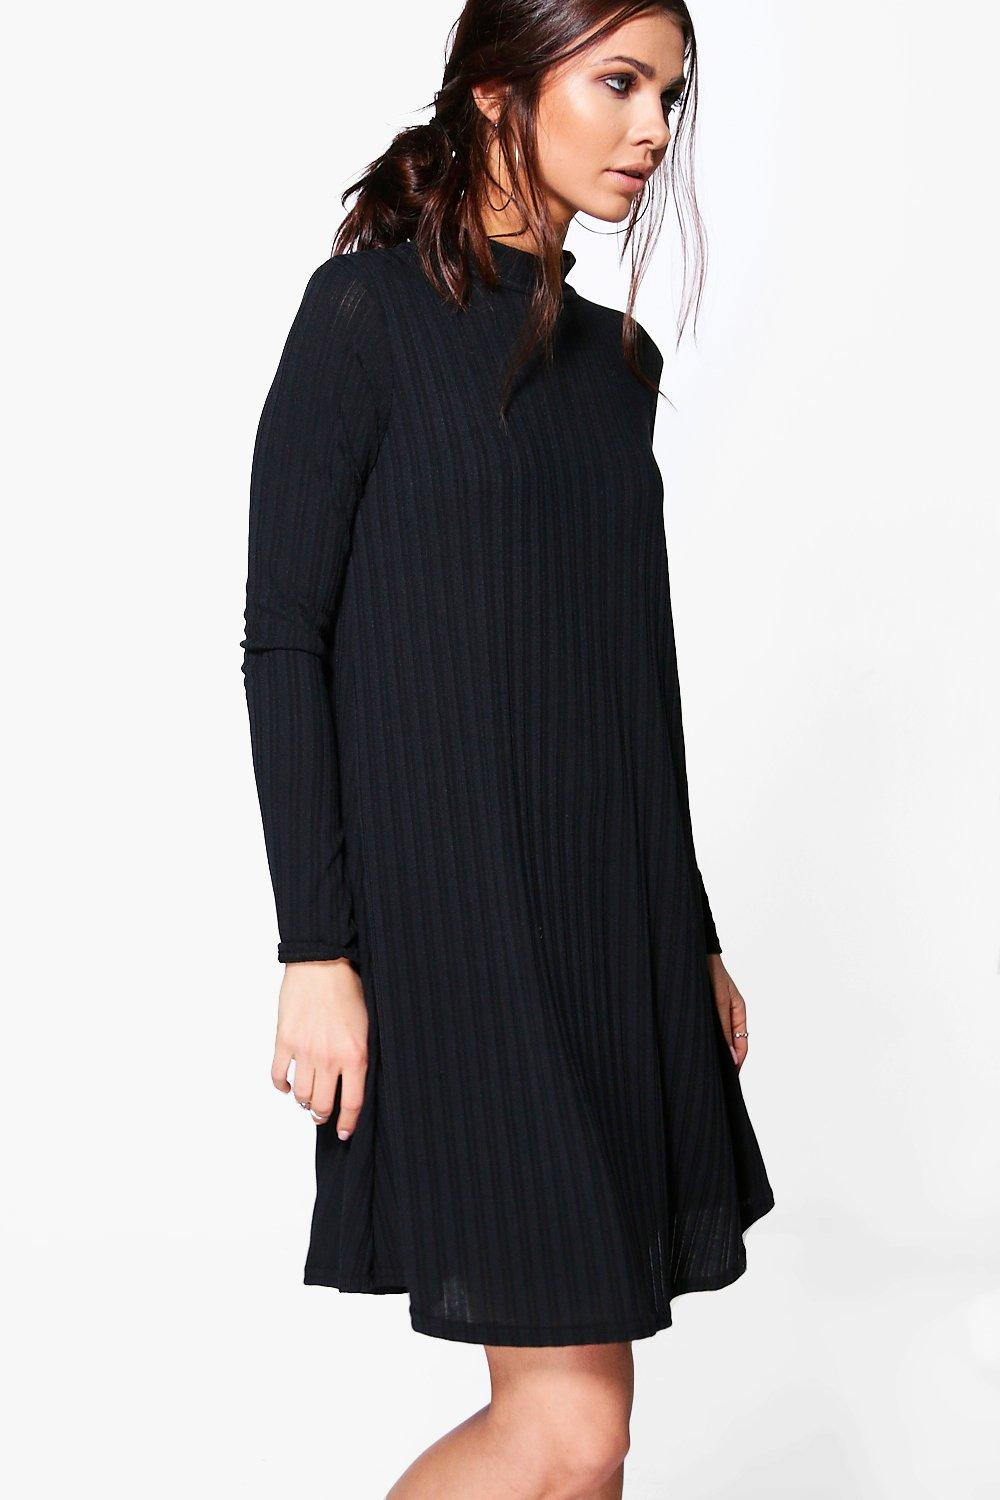 High Neck Rib Knit Swing Dress  black